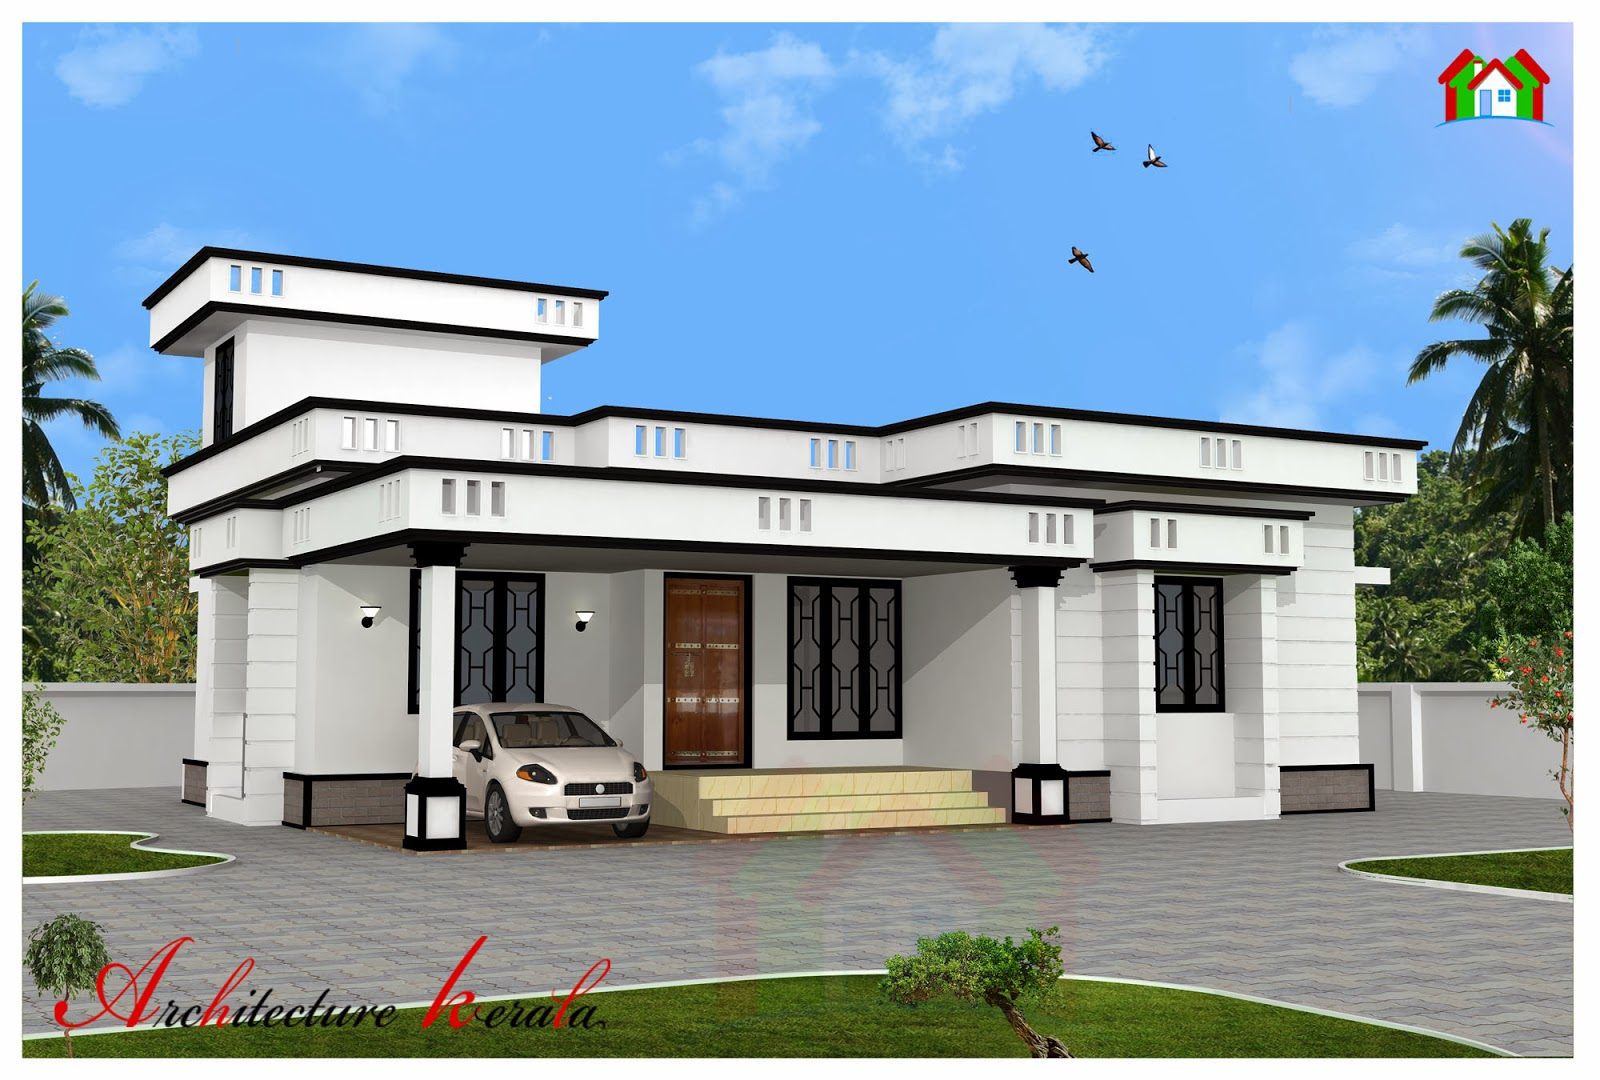 1200 square feet two bedroom house plan and elevation for 1200 square foot house